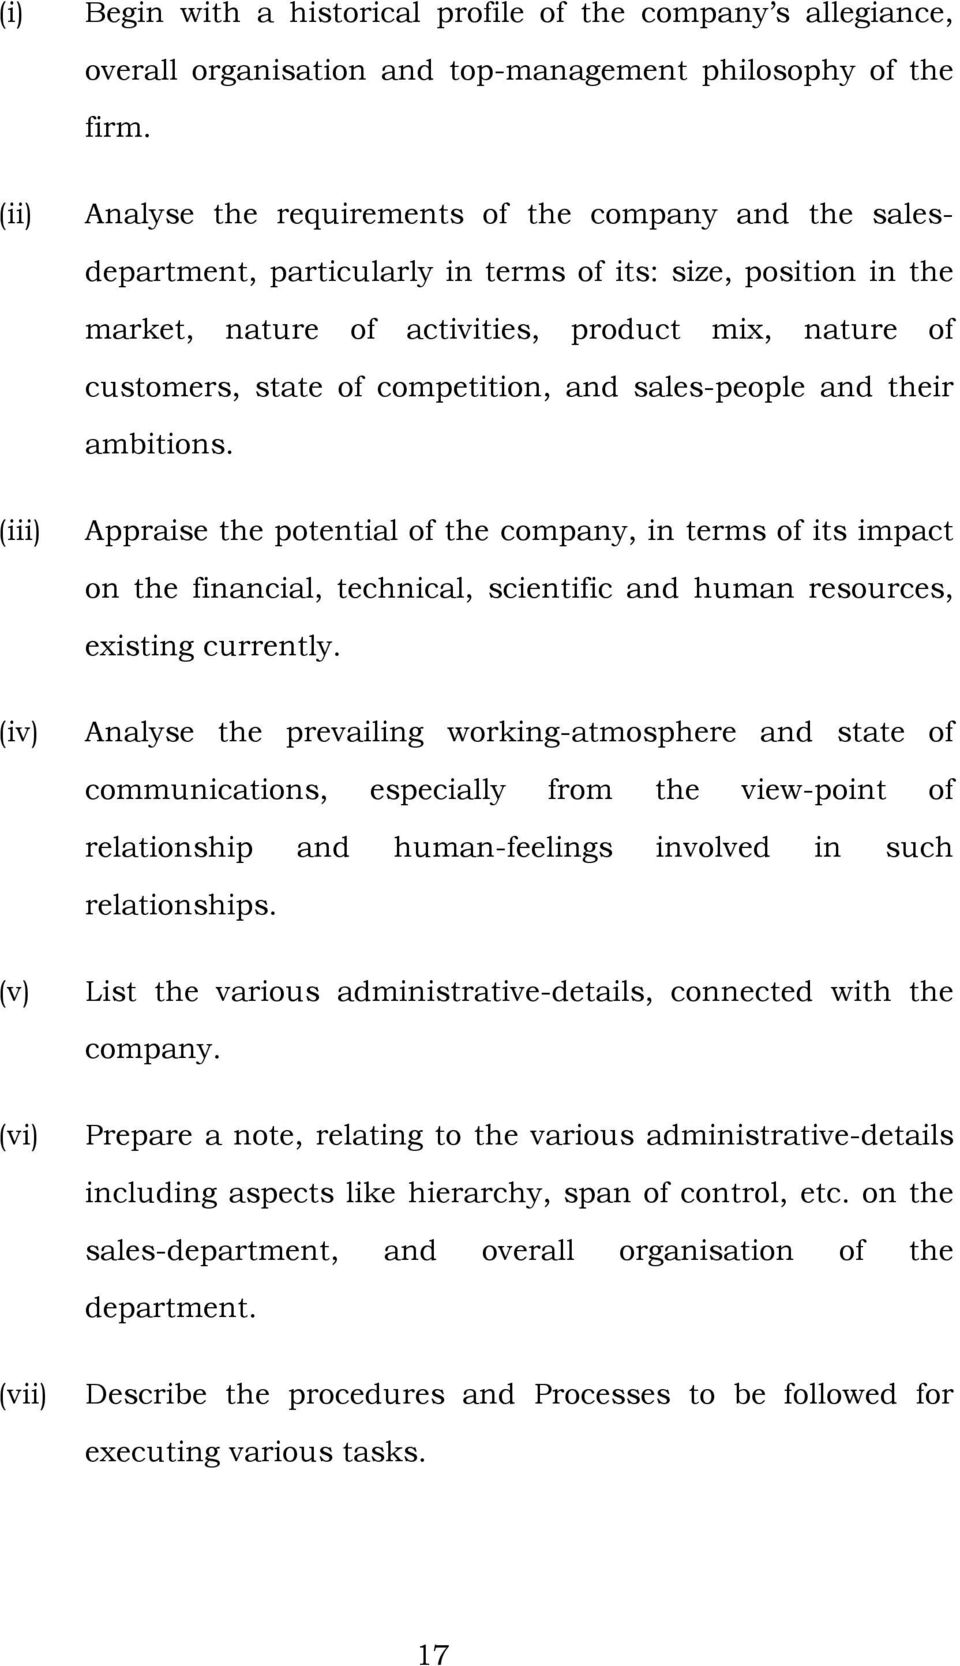 competition, and sales-people and their ambitions. (iii) Appraise the potential of the company, in terms of its impact on the financial, technical, scientific and human resources, existing currently.